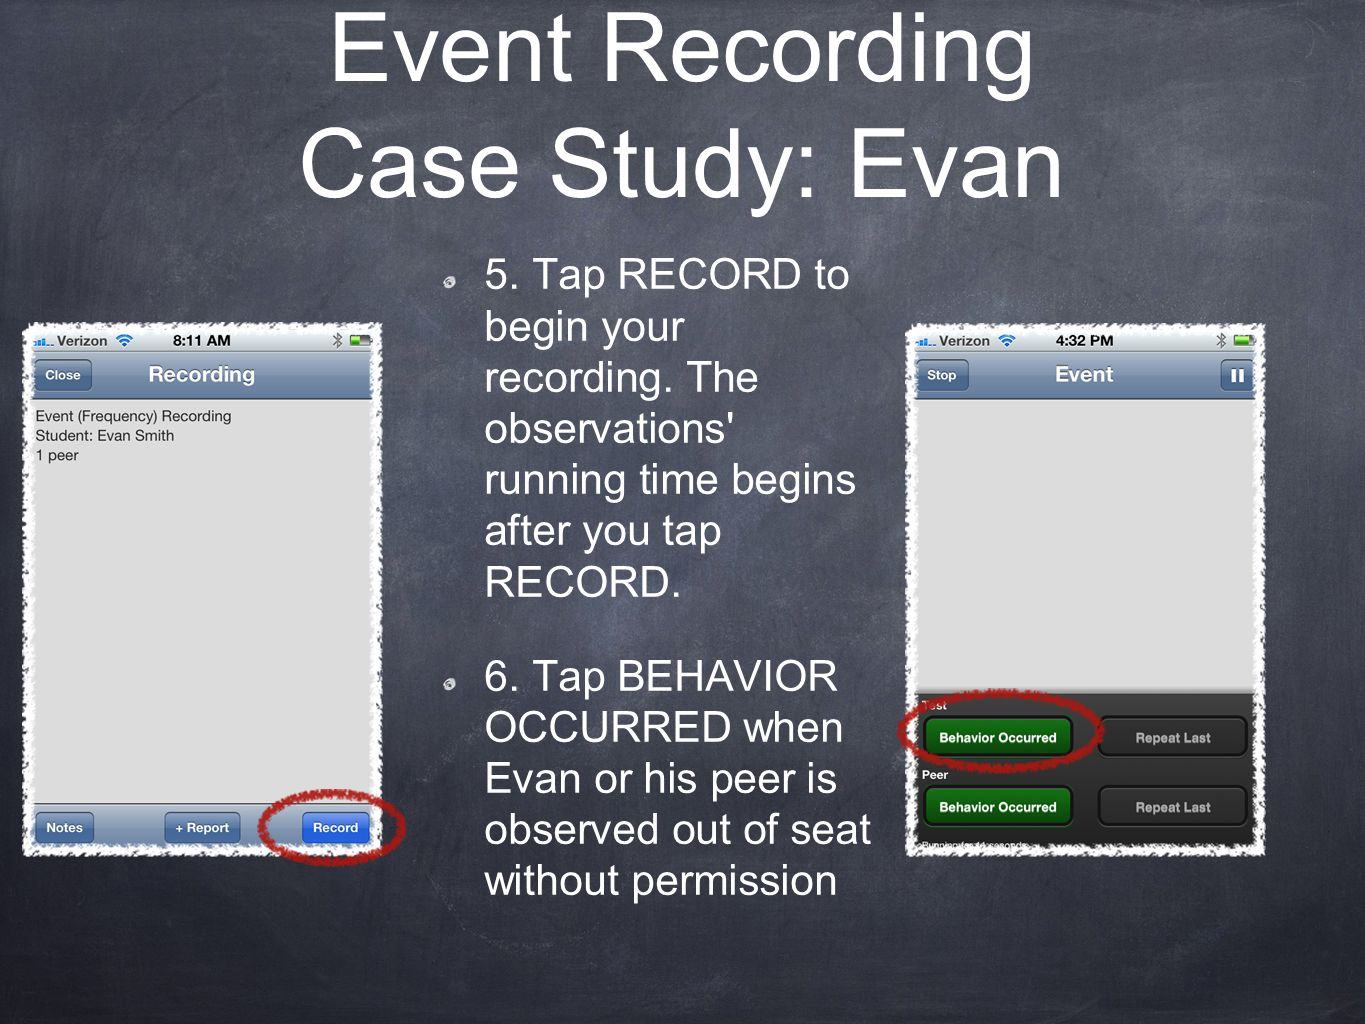 5. Tap RECORD to begin your recording. The observations running time begins after you tap RECORD.